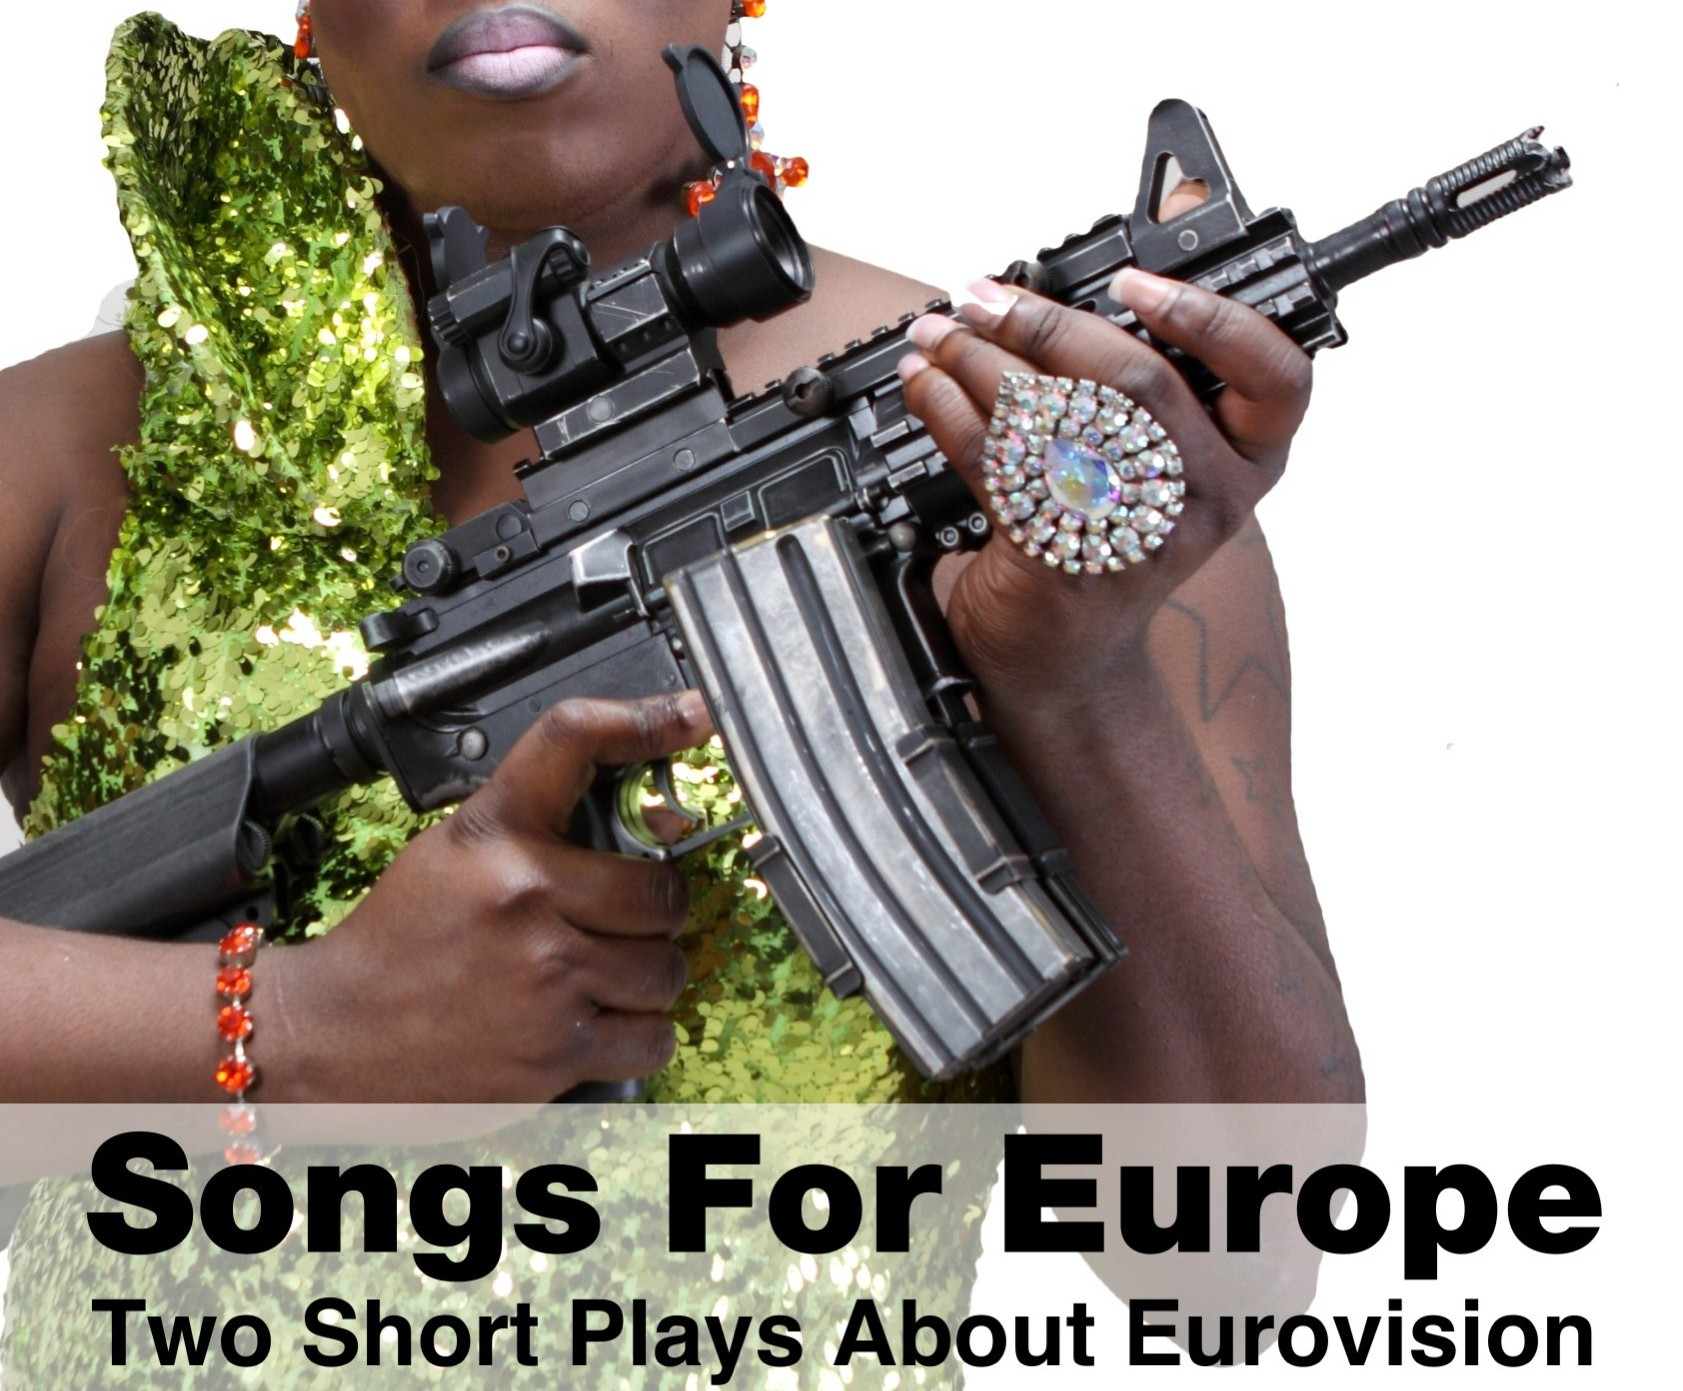 5 Good Reasons To See Songs For Europe: Two Short Plays About Eurovision